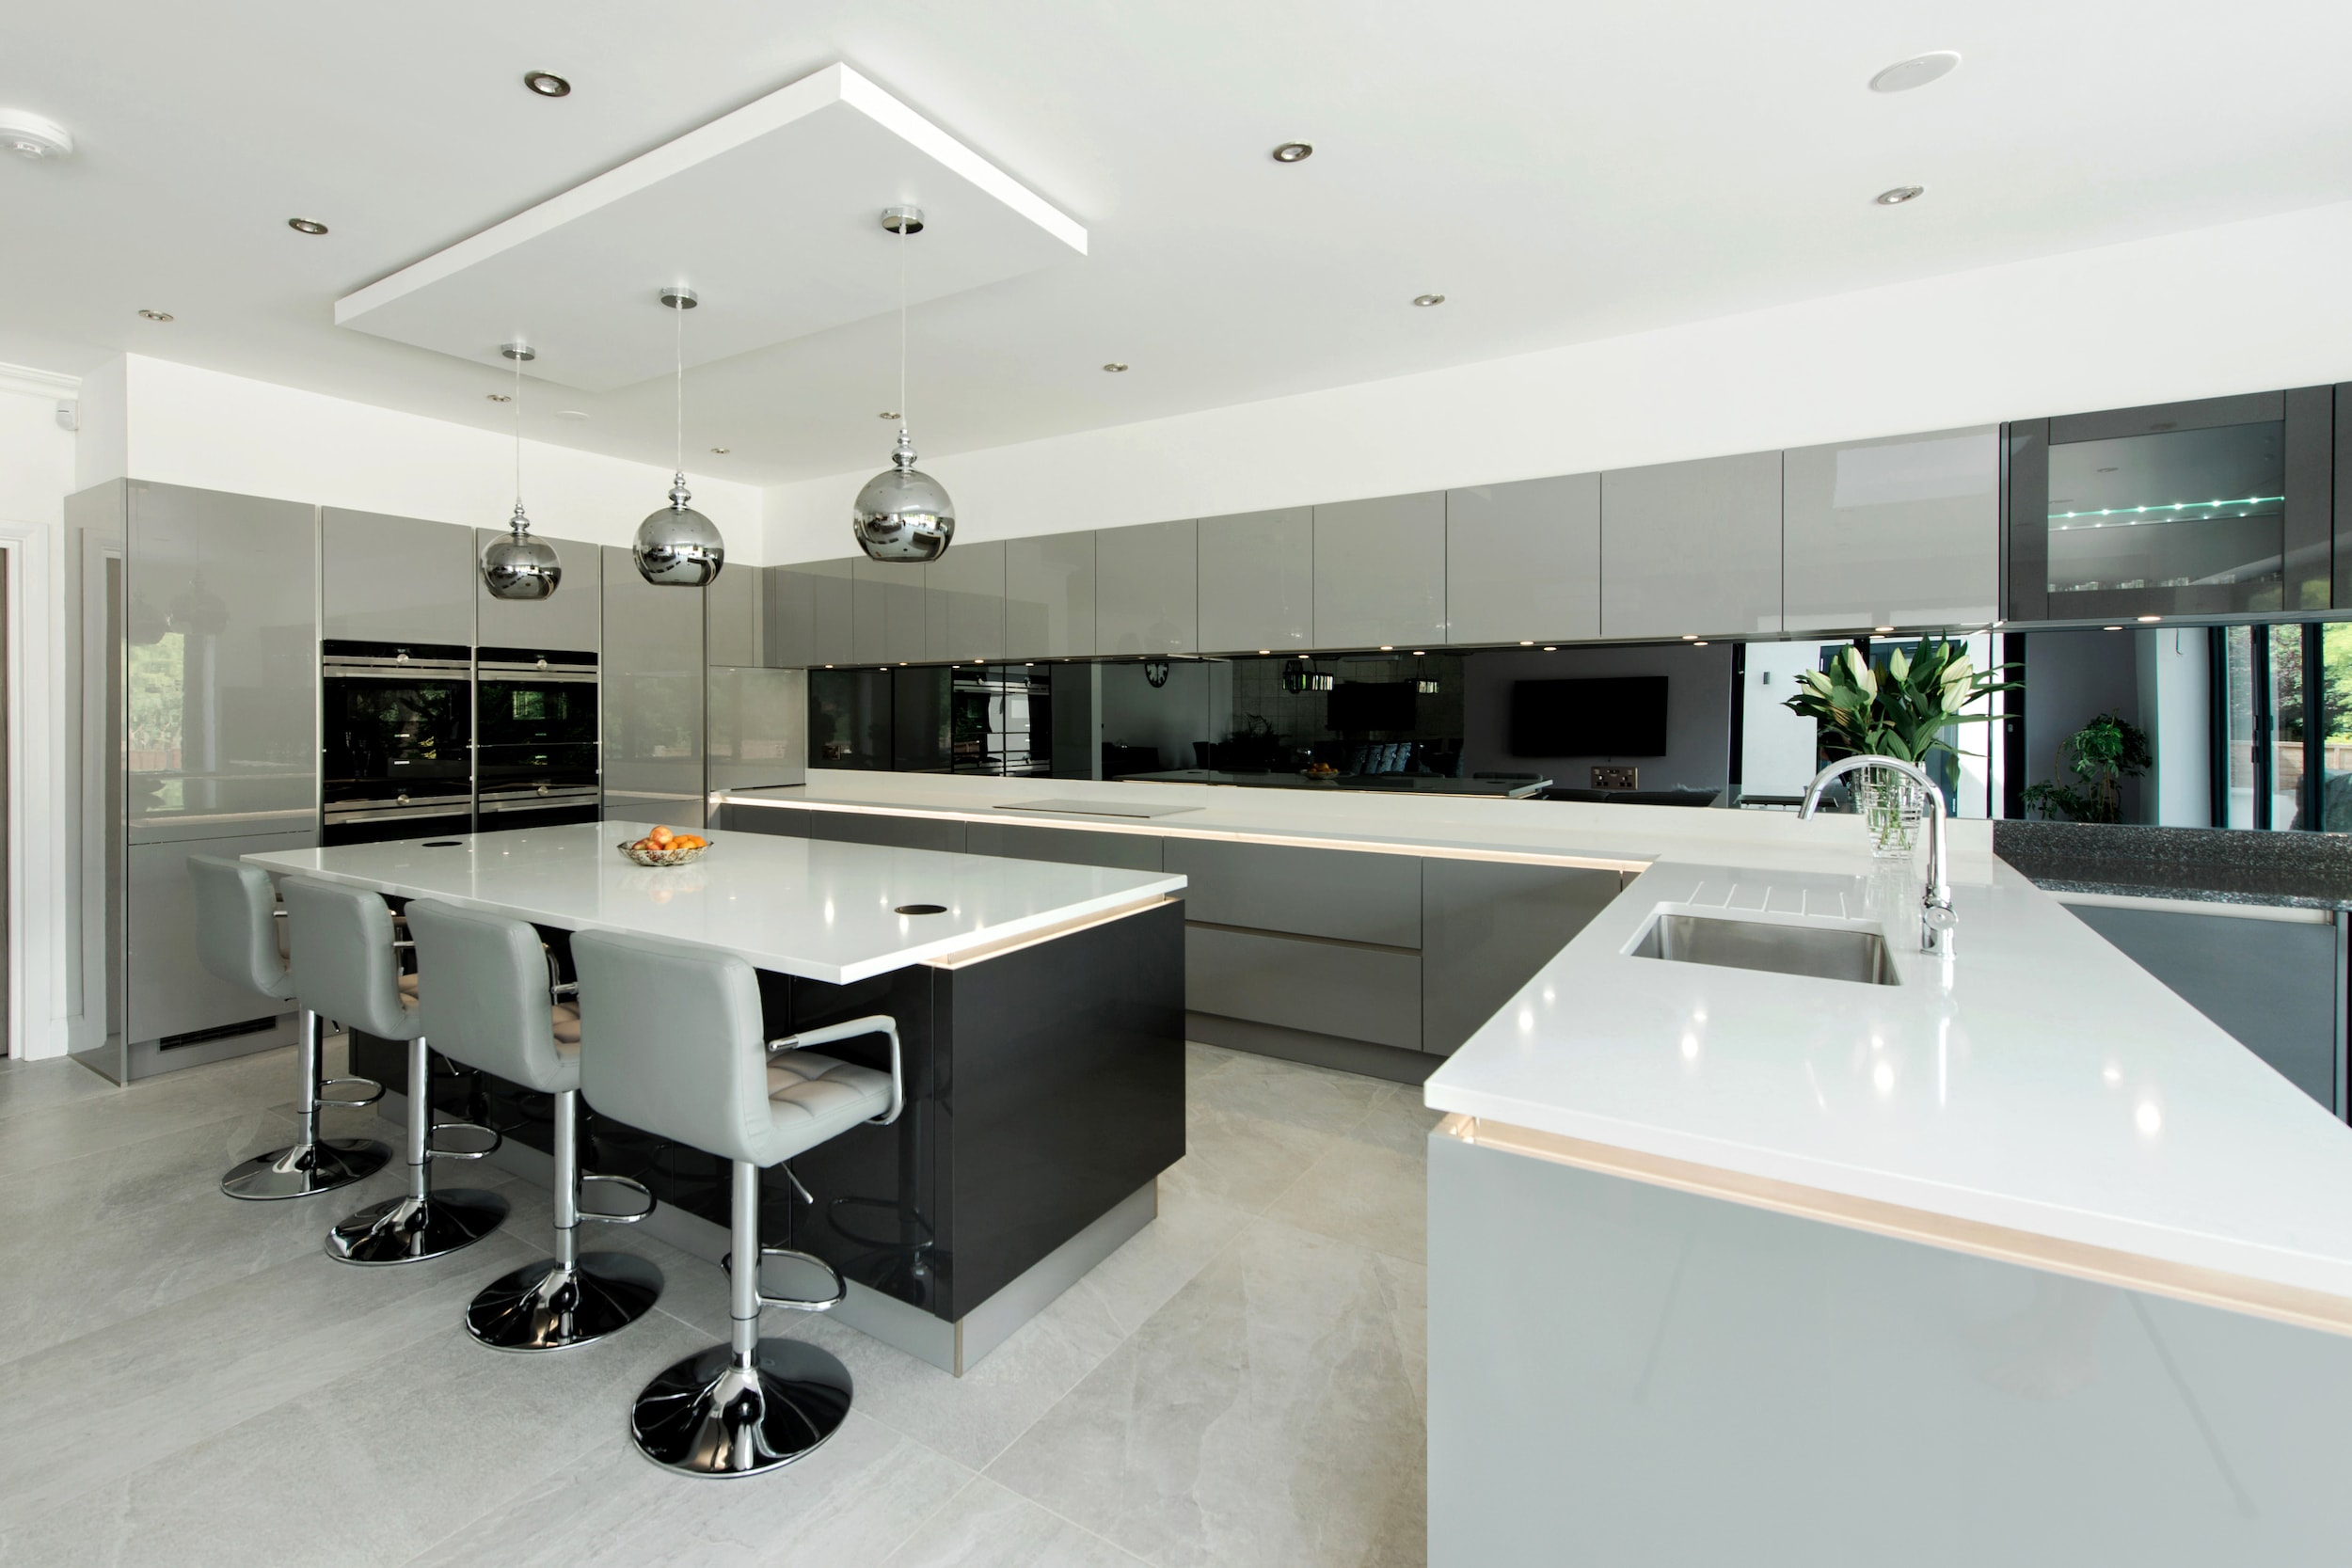 Kitchen Island Cabinets in Mangalore